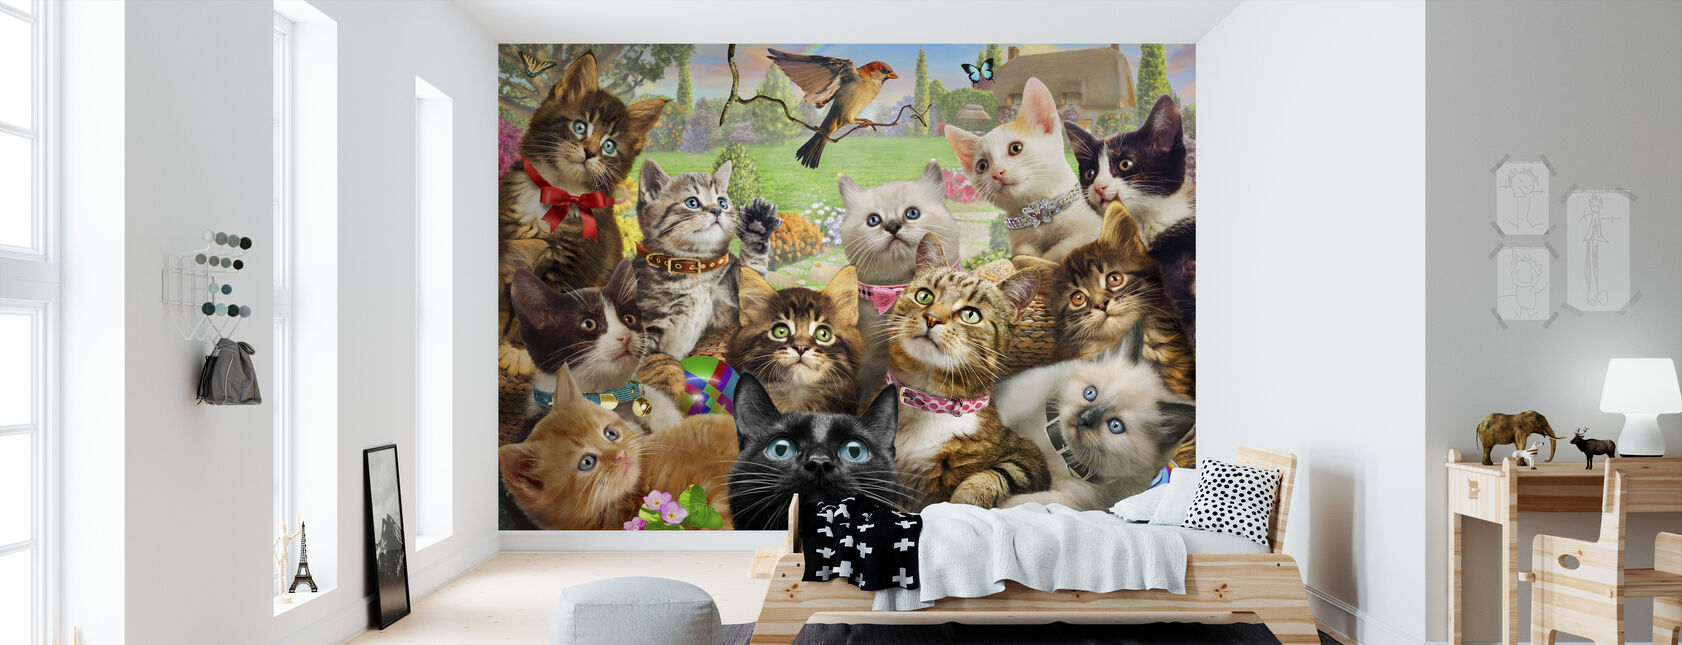 Kittens and bird Europe - Wallpaper - Kids Room